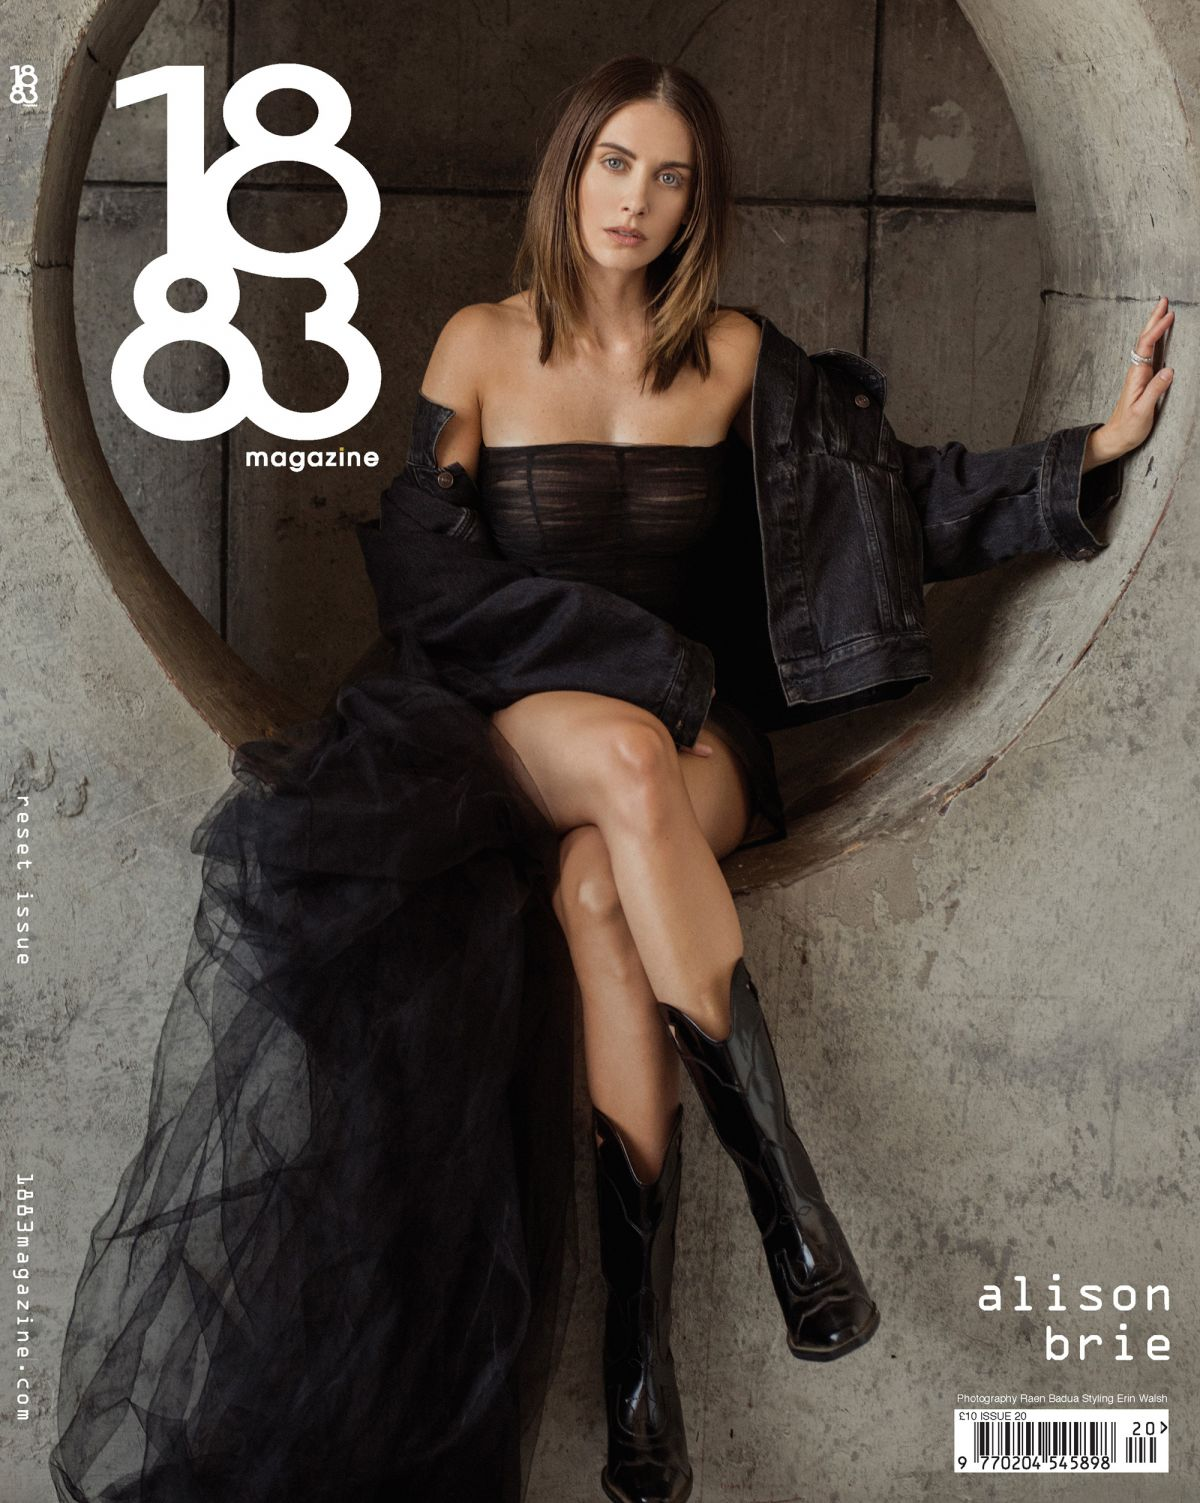 Alison Brie For 1883 Magazine July